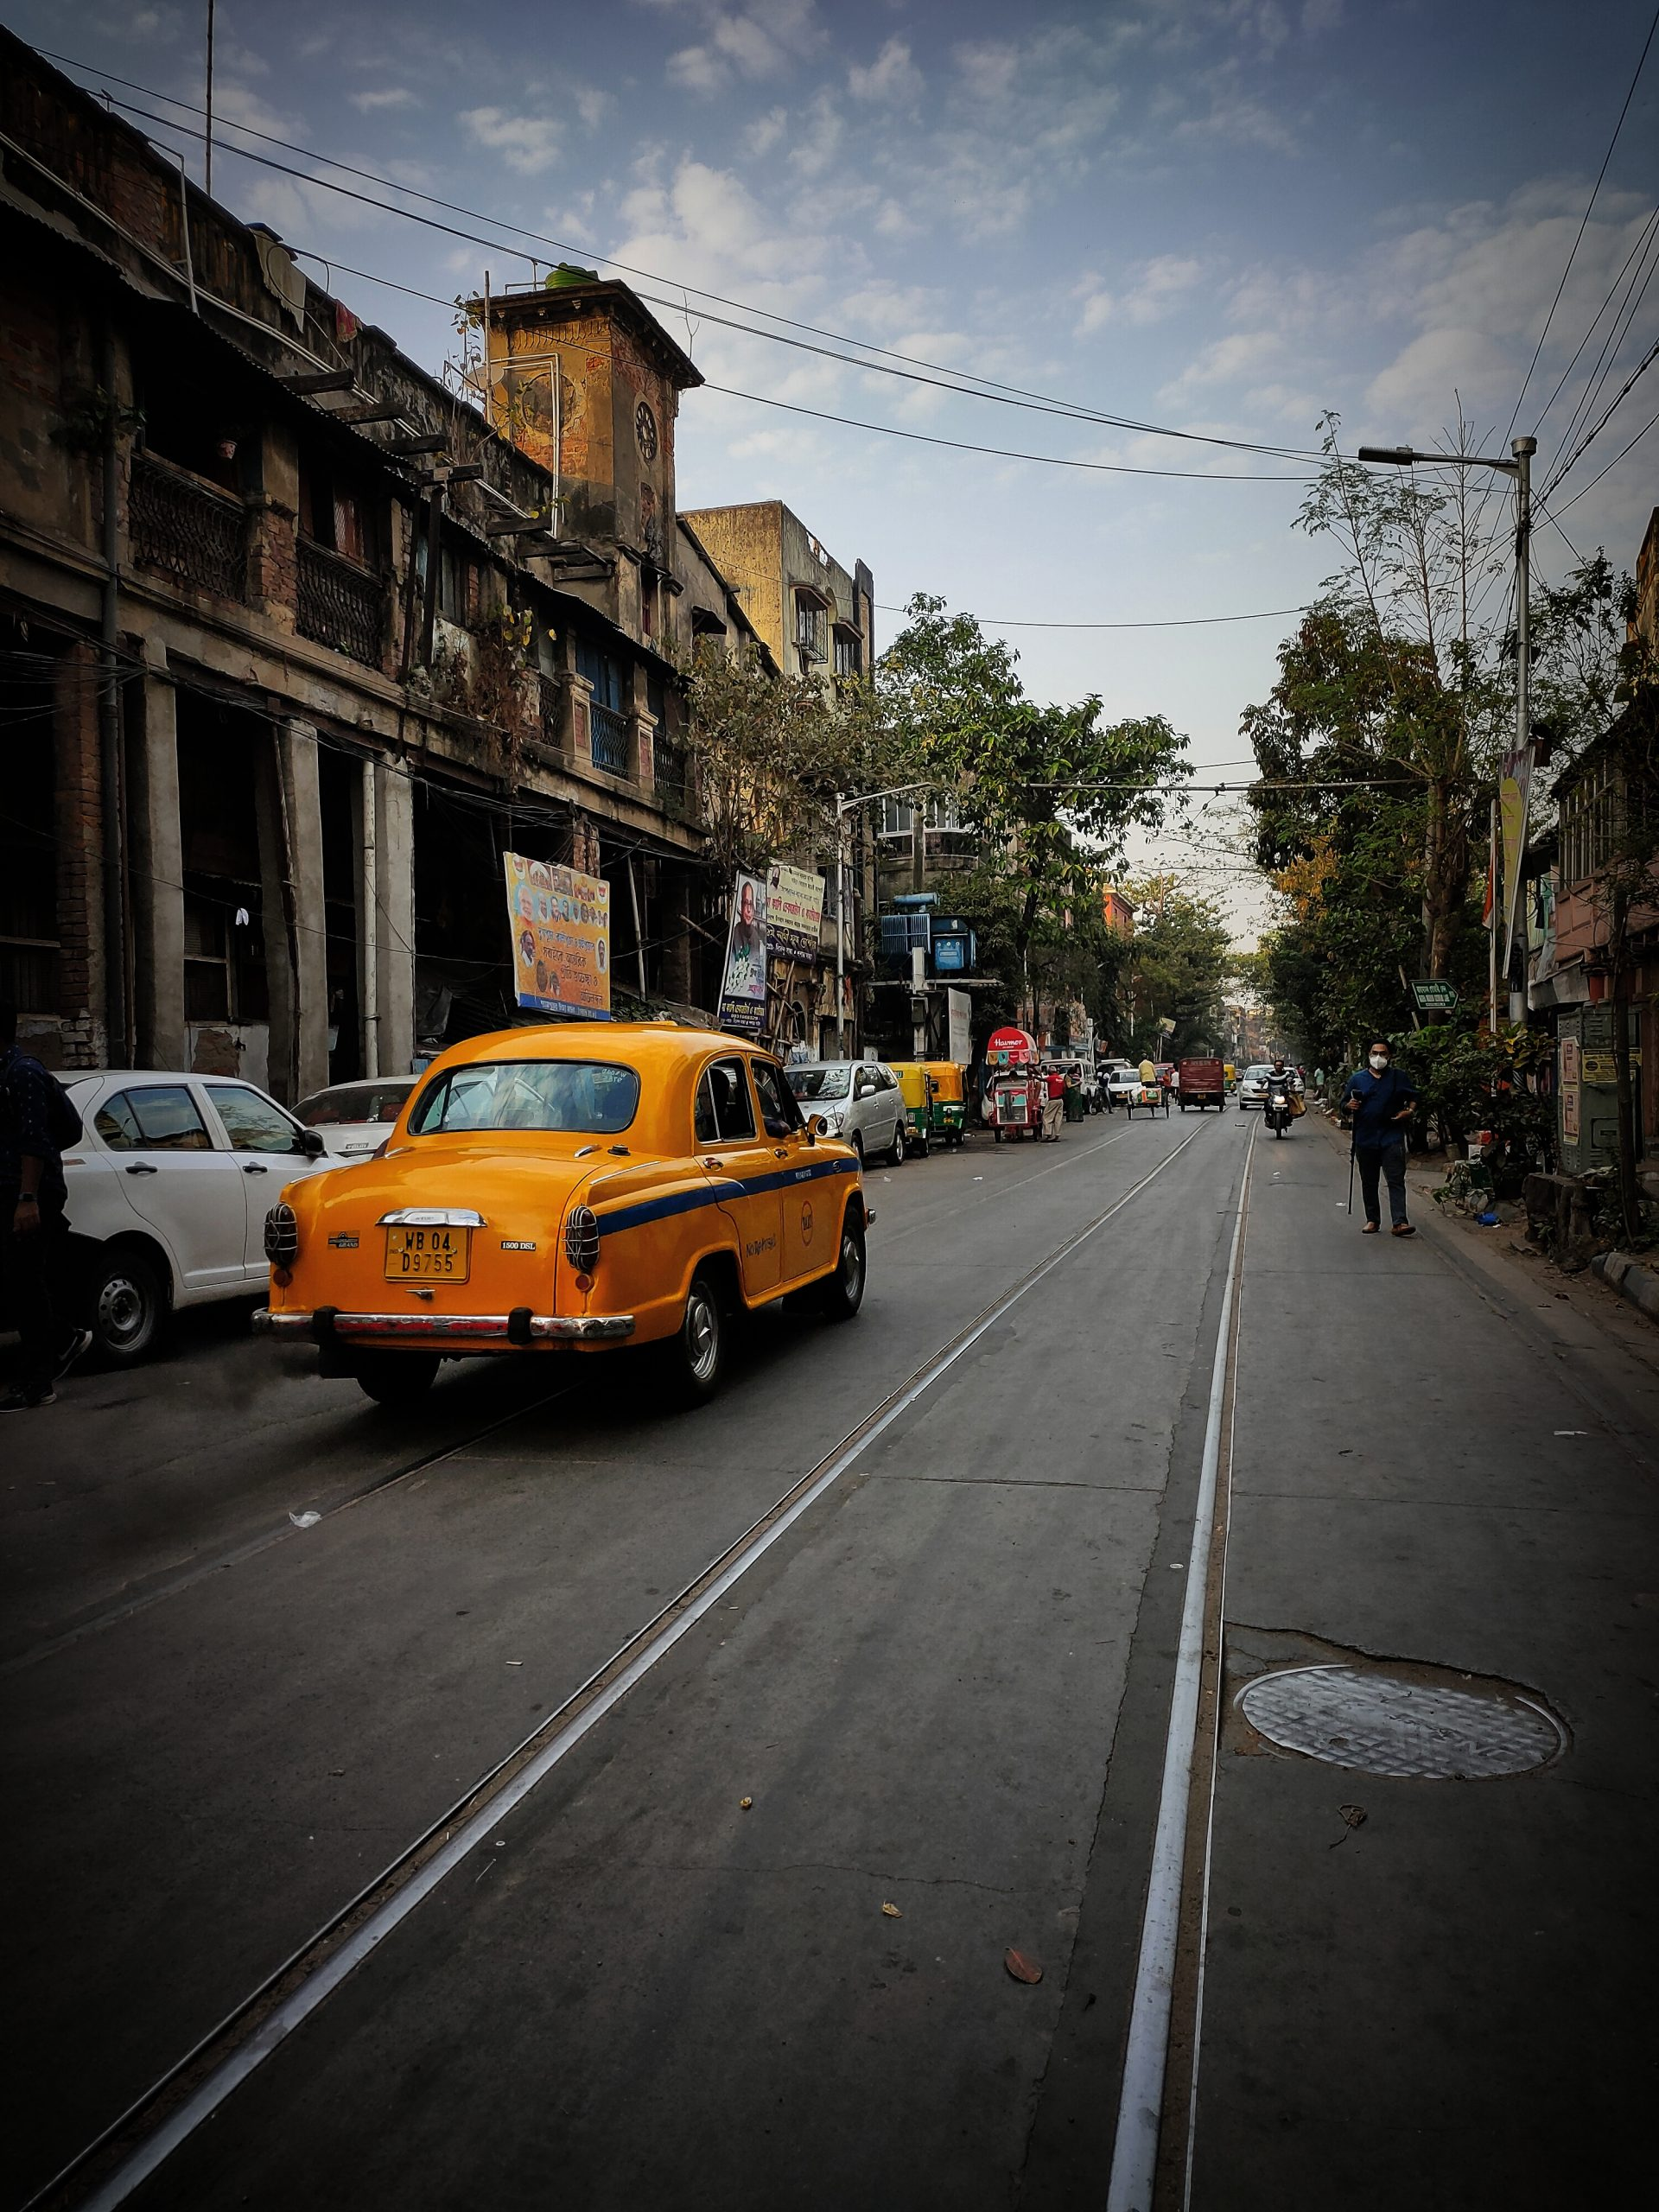 Yellow taxi on a street